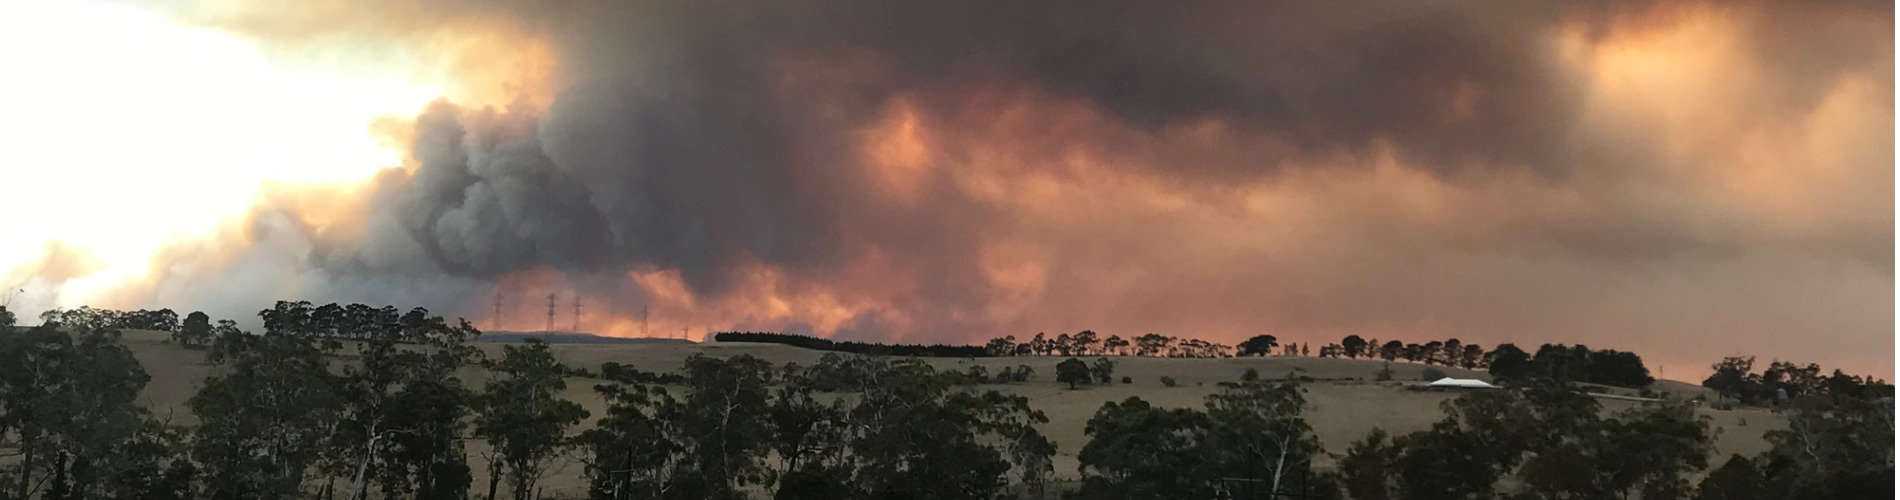 smoke from bushfire billows over tinder dry grassy hill